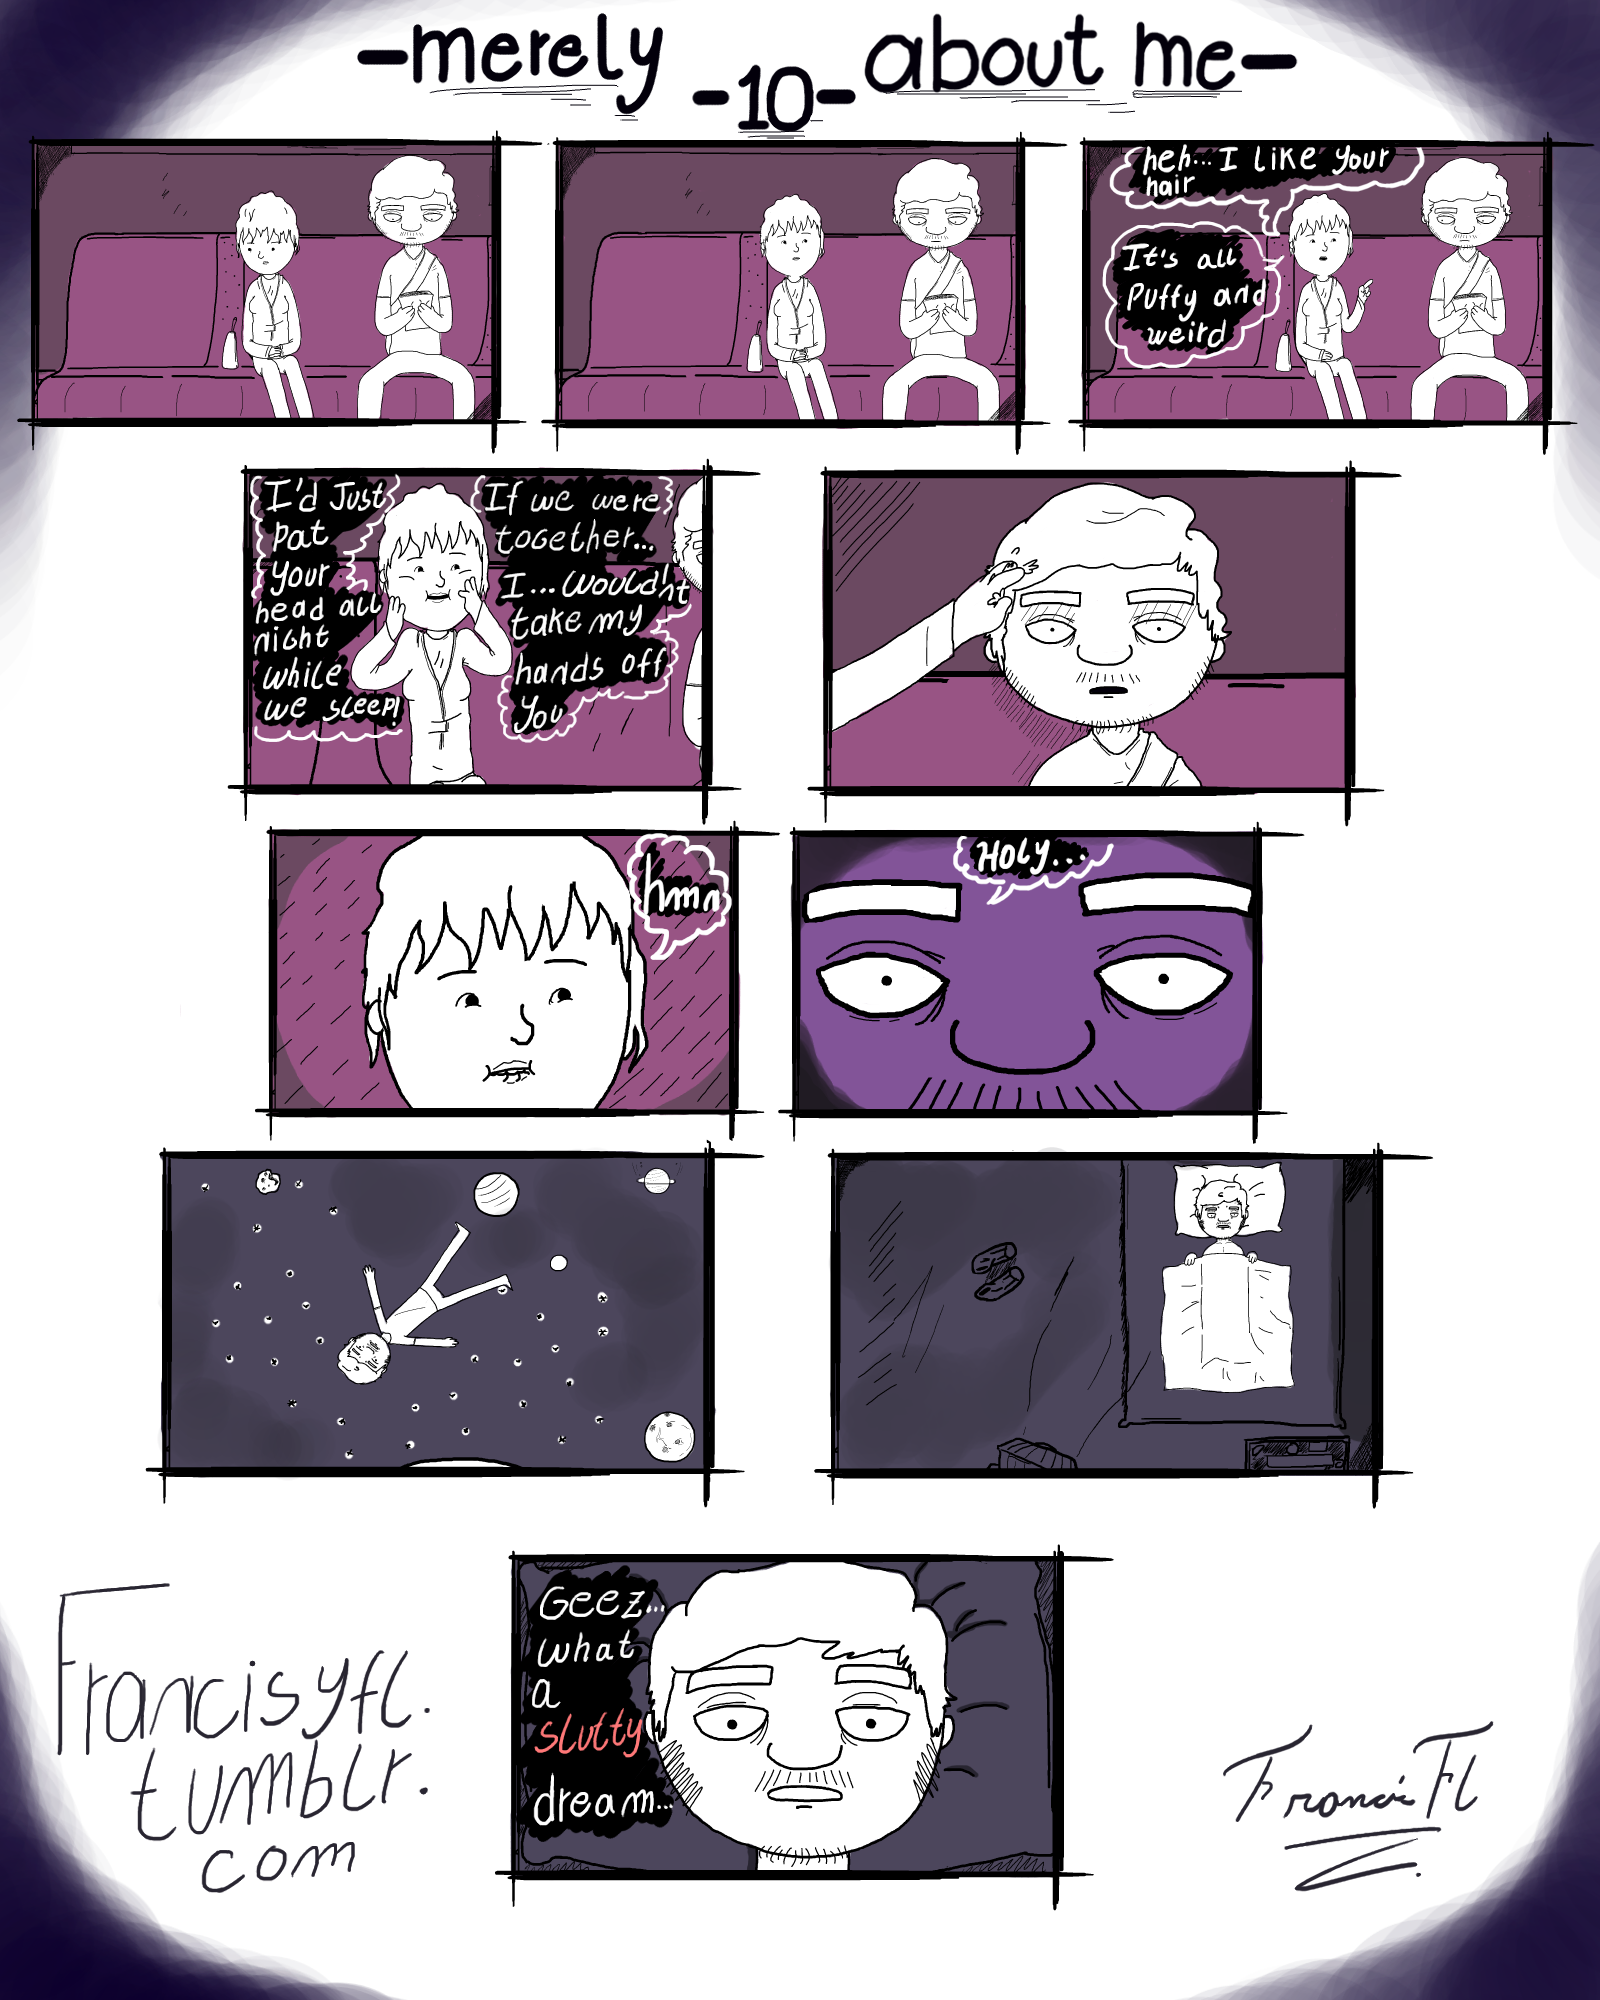 [comic]- Merely about me - 10